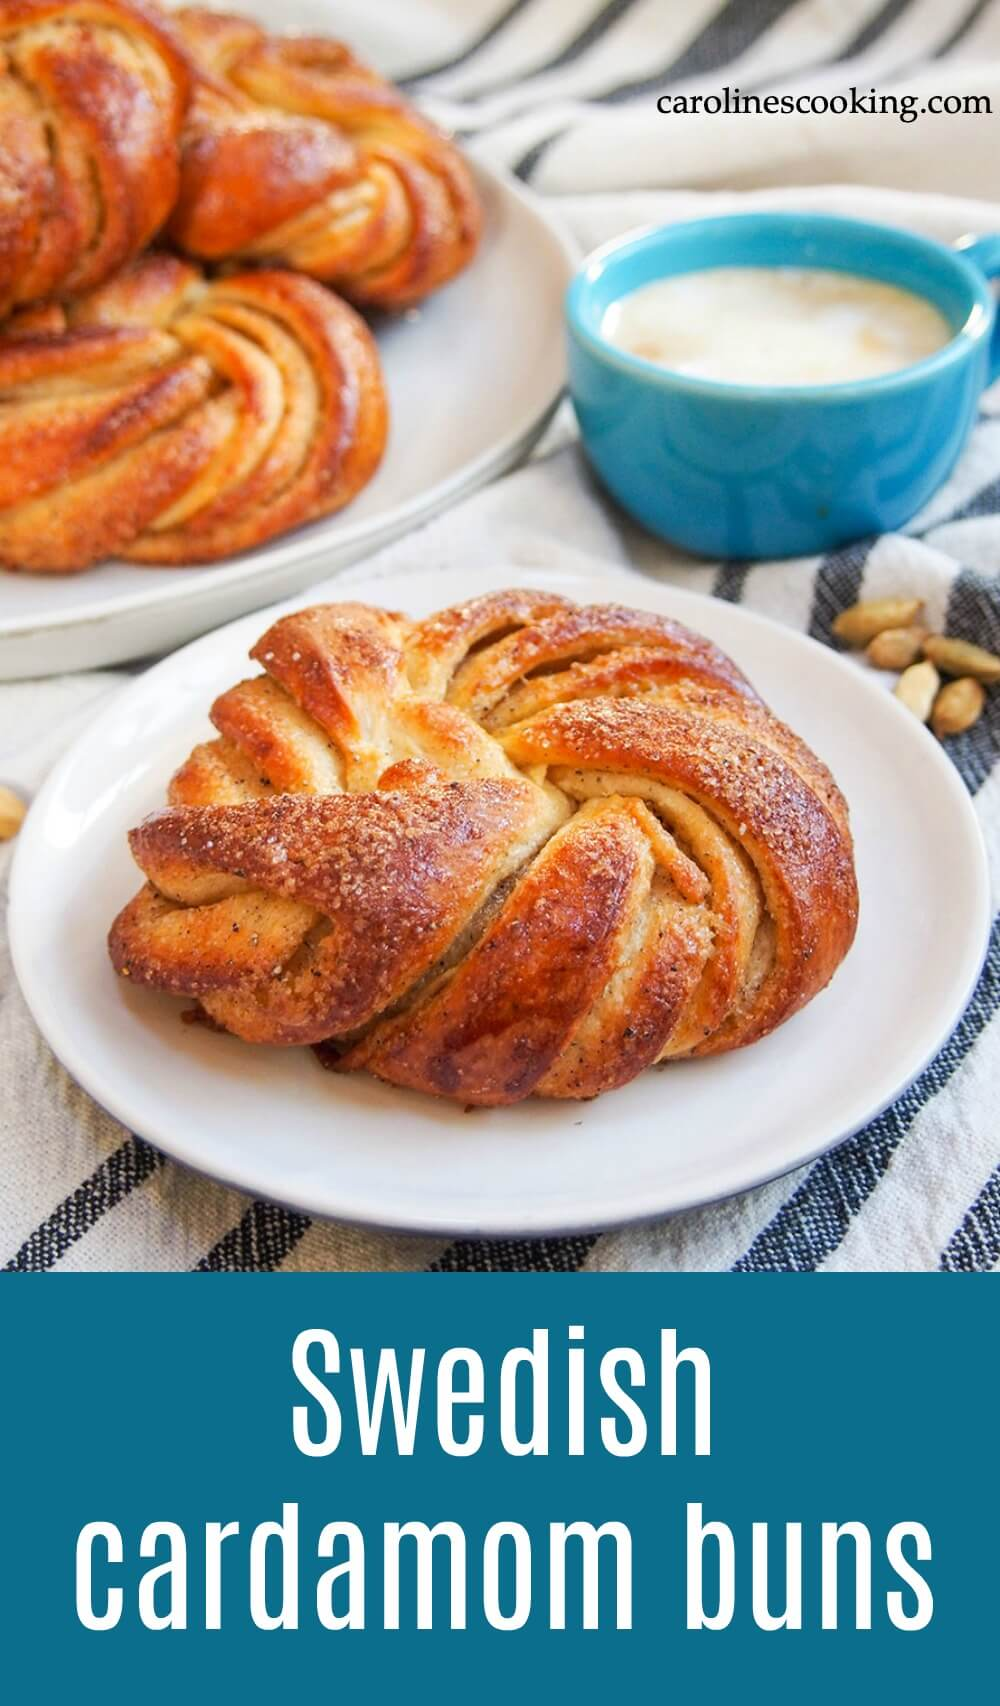 Swedish cardamom buns are like a cross between a cinnamon roll and a pull apart bread. They're light, packed with delicious flavor, and a beautiful addition to any brunch or coffee table. #baking #cardamom #bread #brunch 